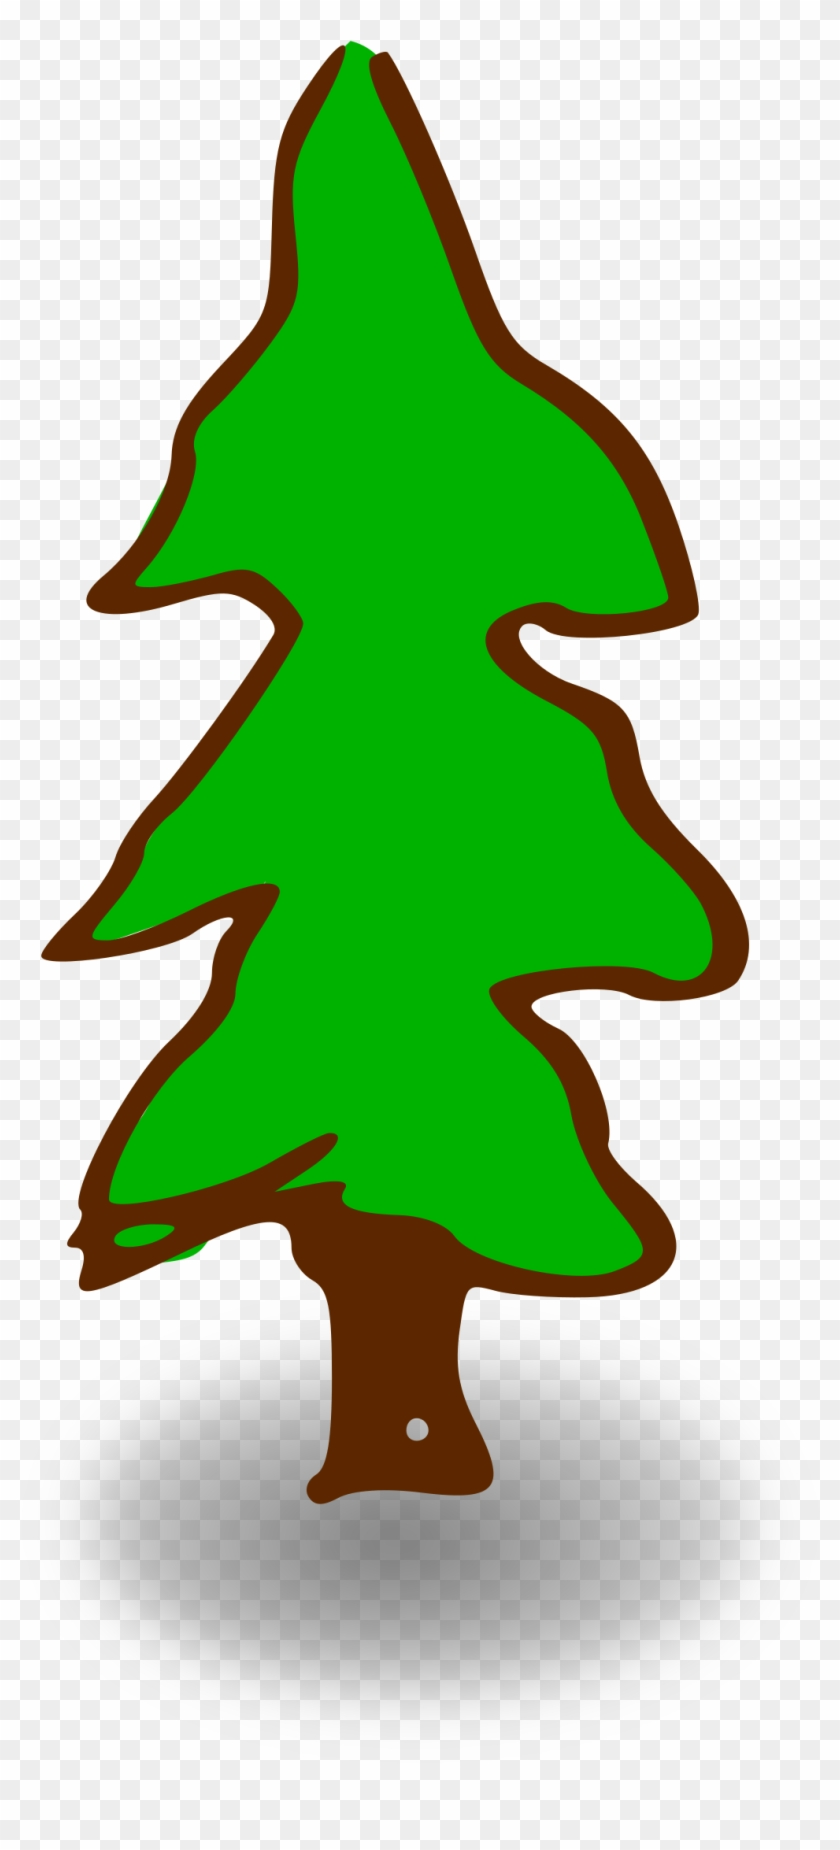 Cartoon Tree With Transparent Background Clip Art Of Forest Hd Png Download 1016x2190 1476405 Pngfind Background,background vector,cartoon,clouds,scenery vector background and more resources at freedesignfile.com. clip art of forest hd png download